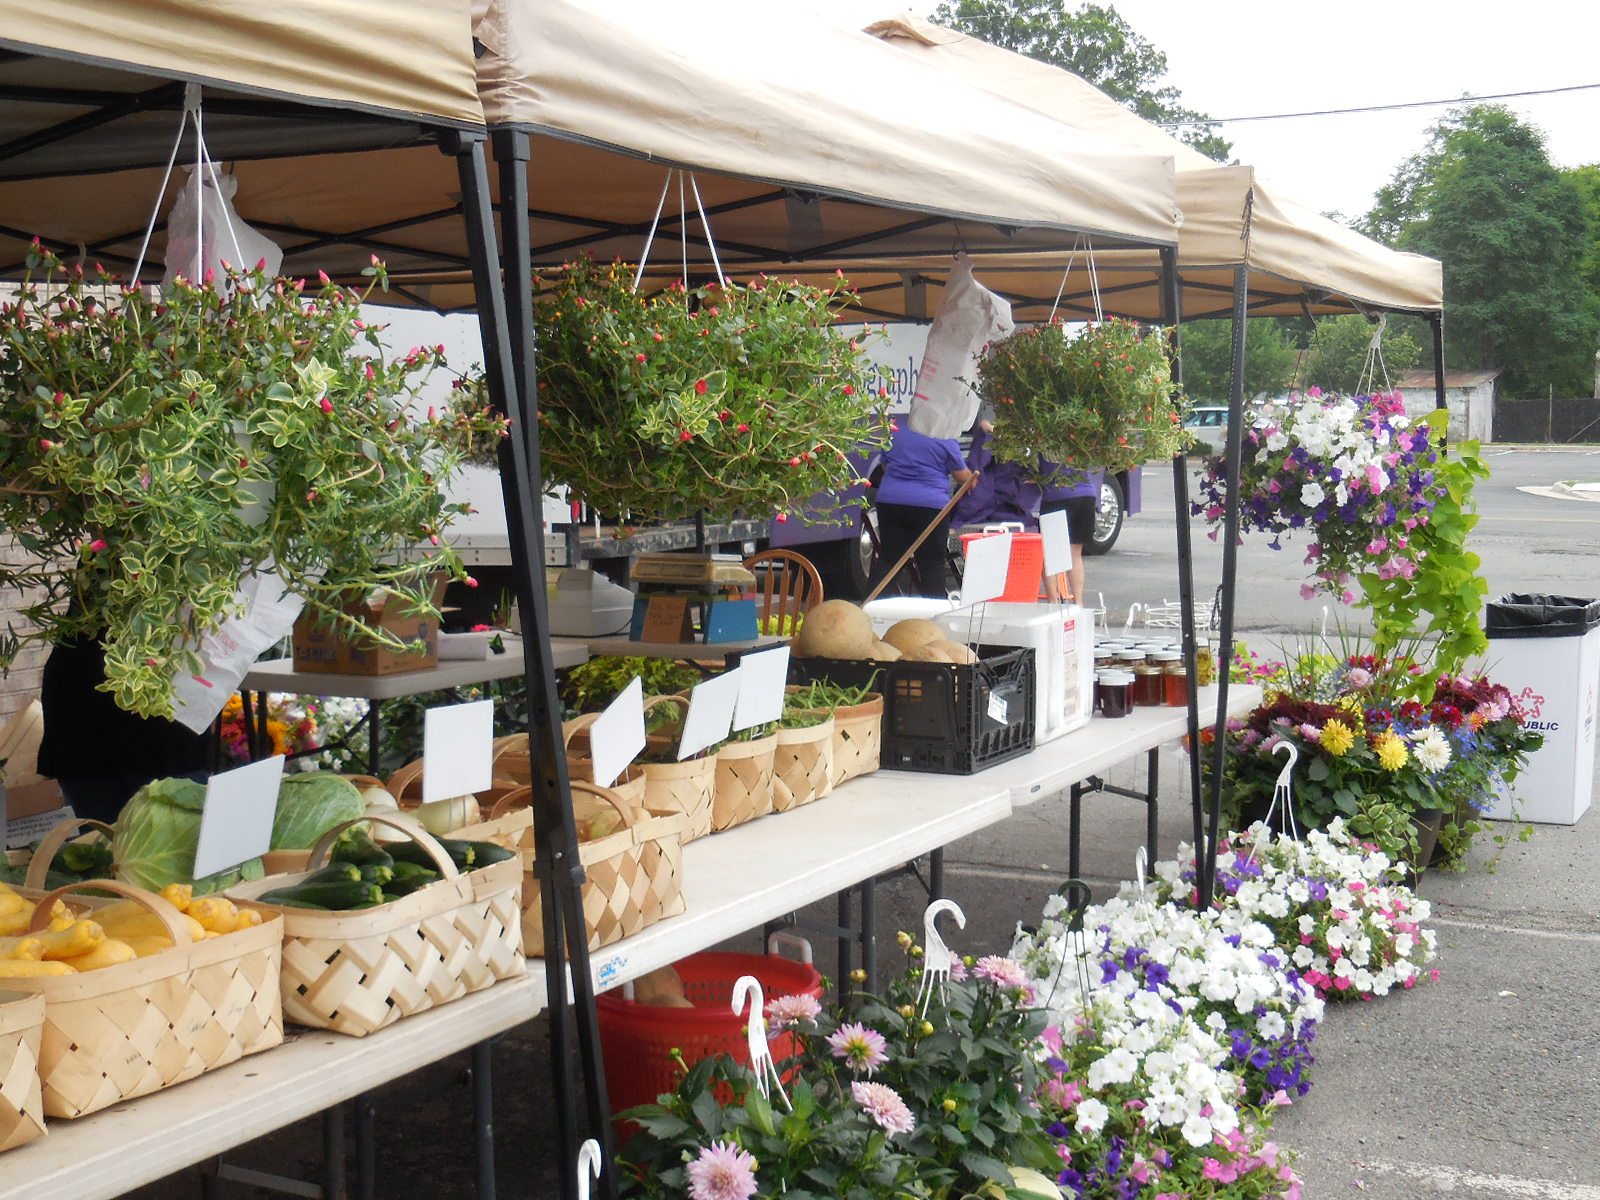 The weekly farmers market provides residents with fresh, healthy food.